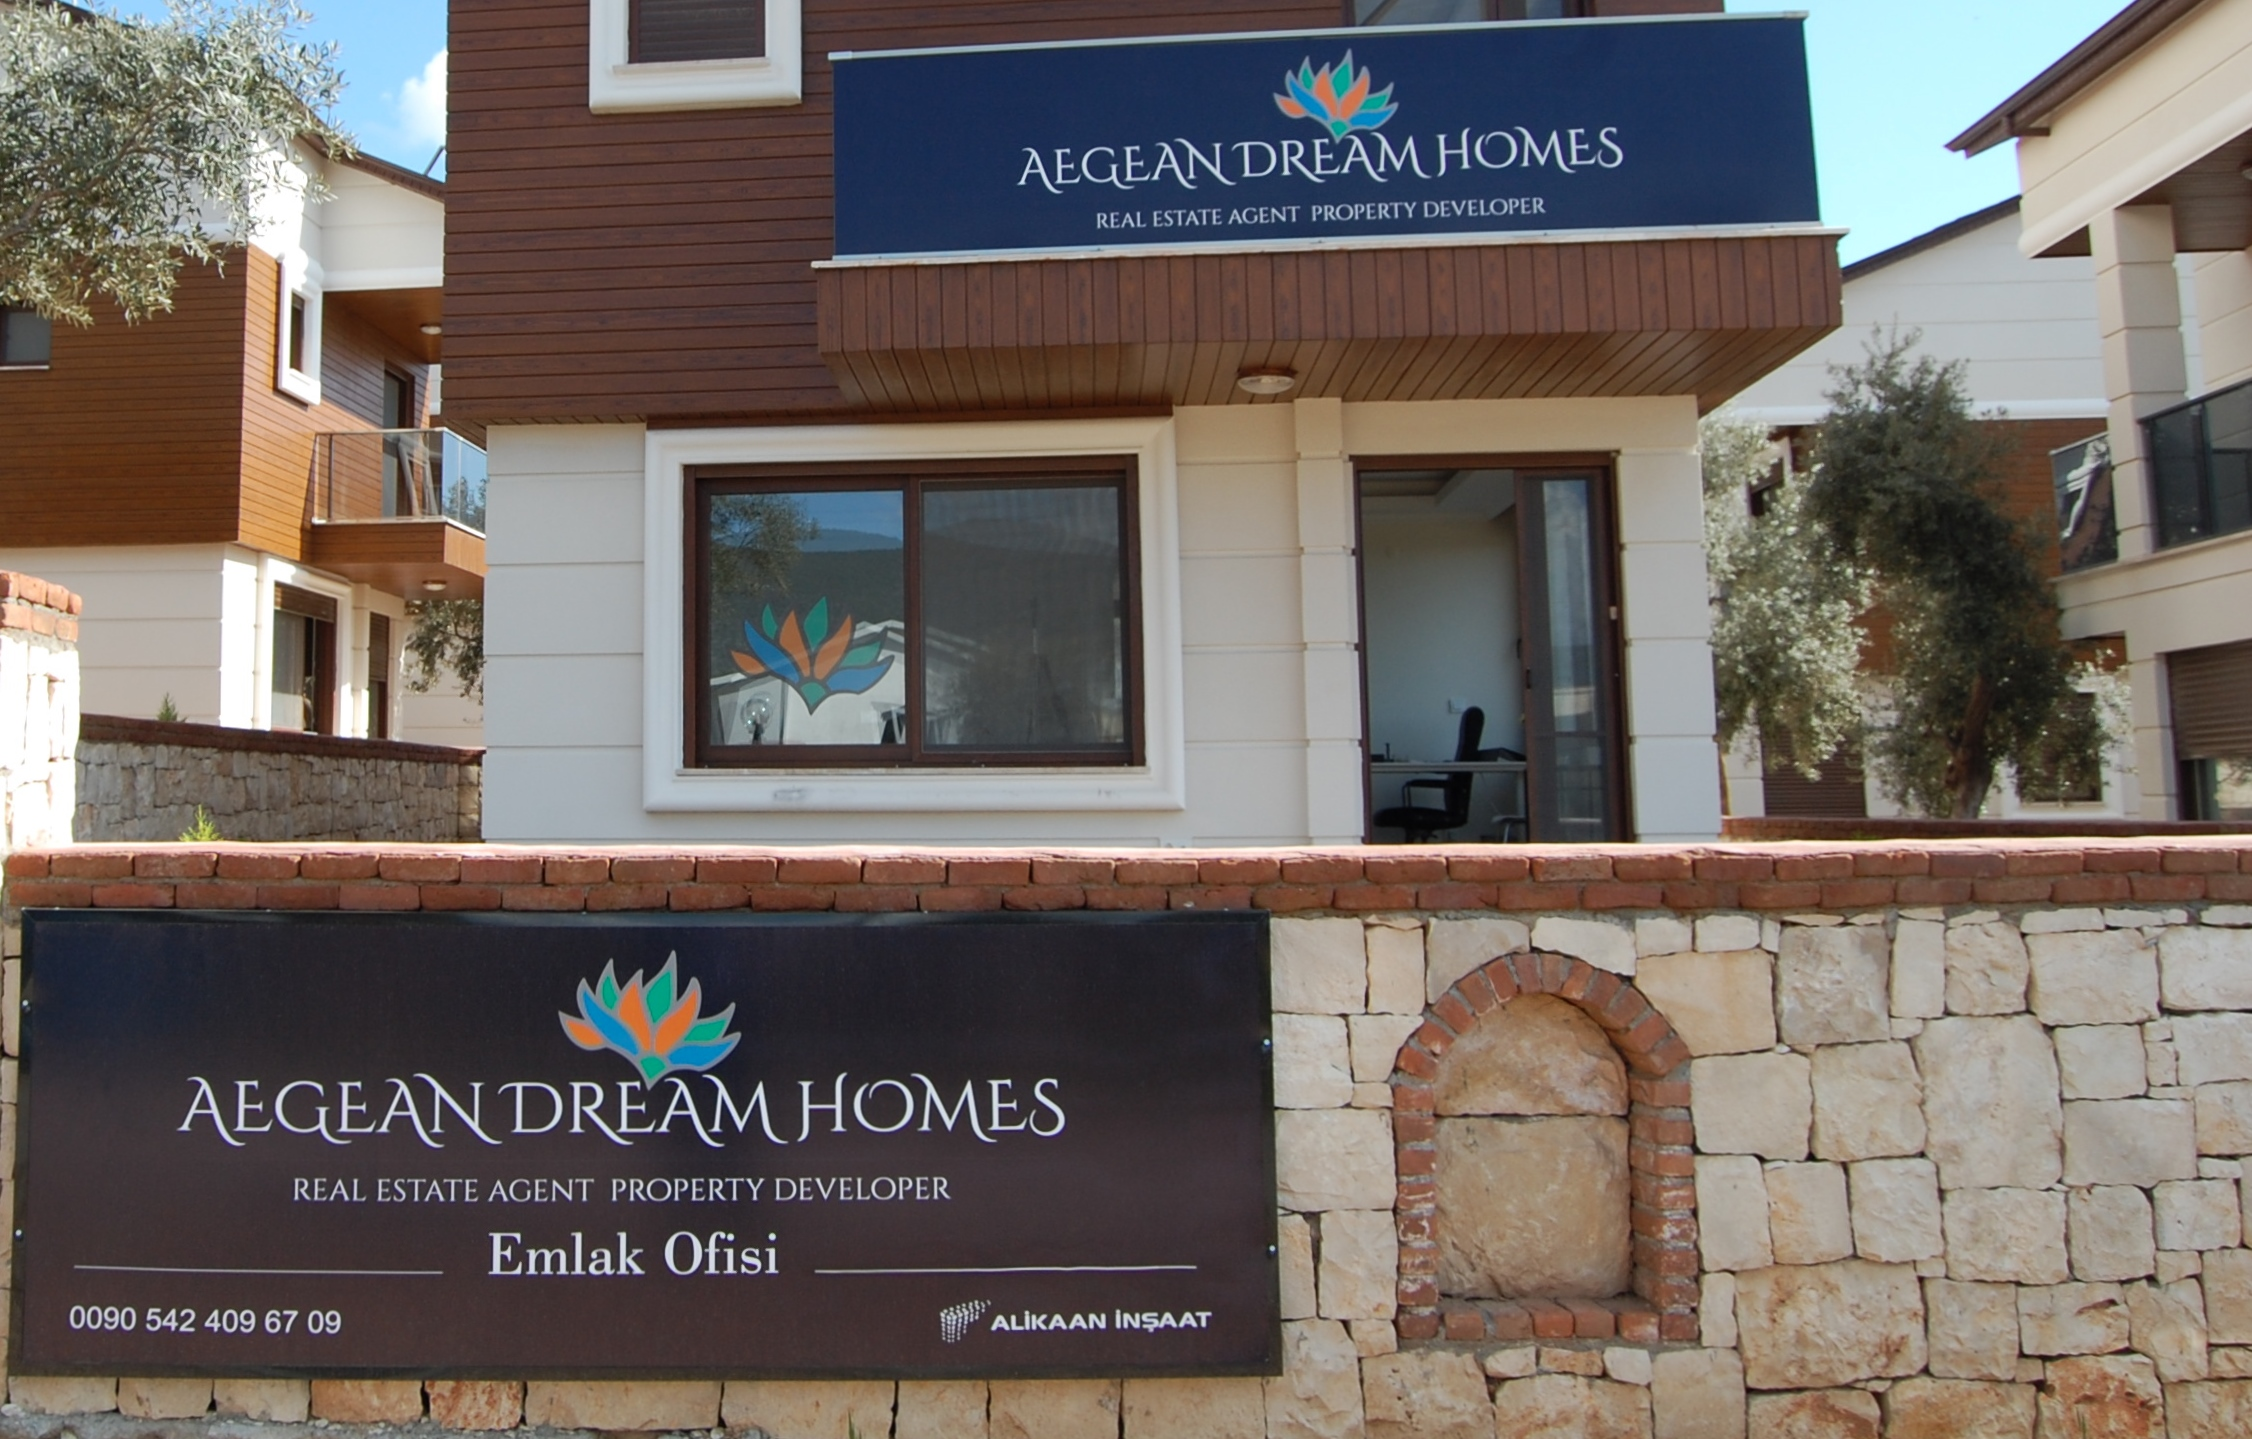 Real Estate Agent Based In Aydin Turkey